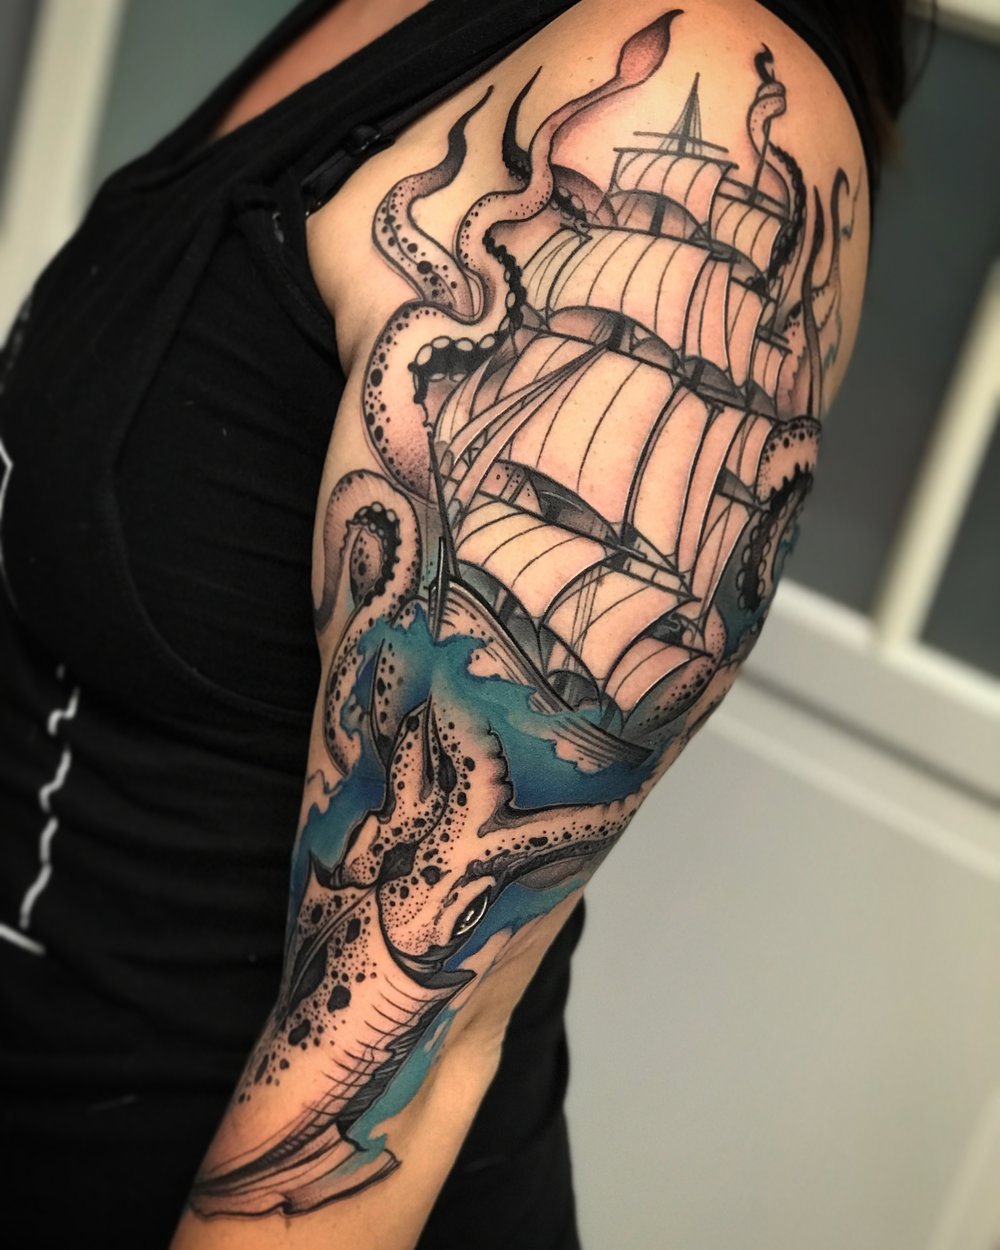 Squid and Ship Tattoo by David Mushaney